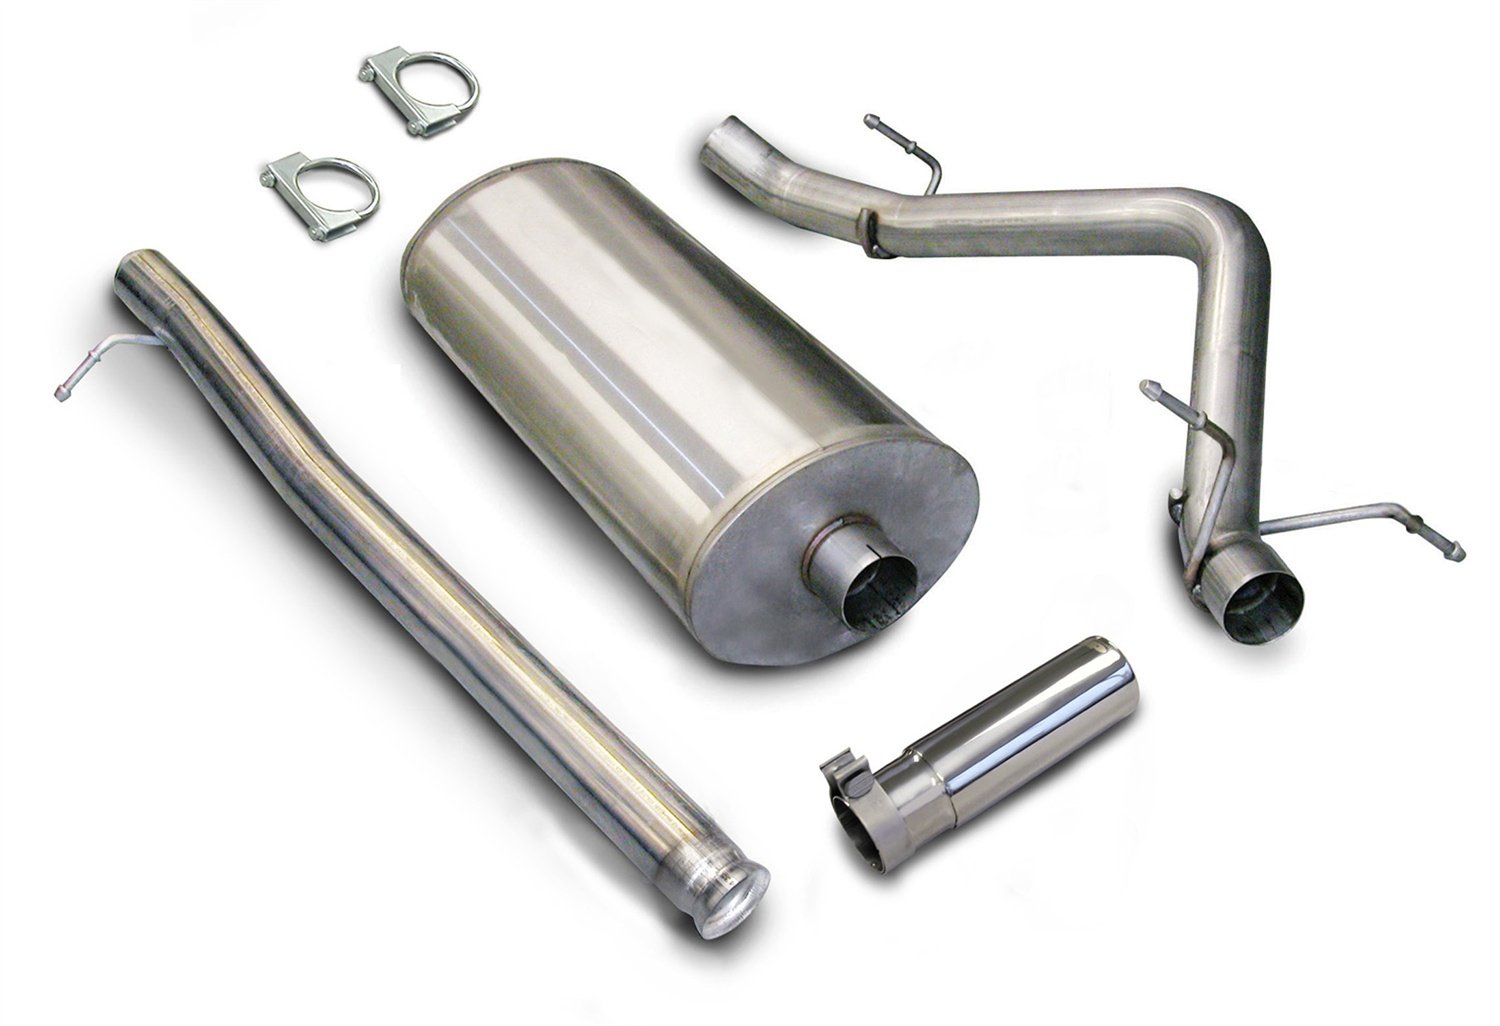 CORSA 24259 Stainless Steel Single Side Exit Cat-Back Exhaust System Kit